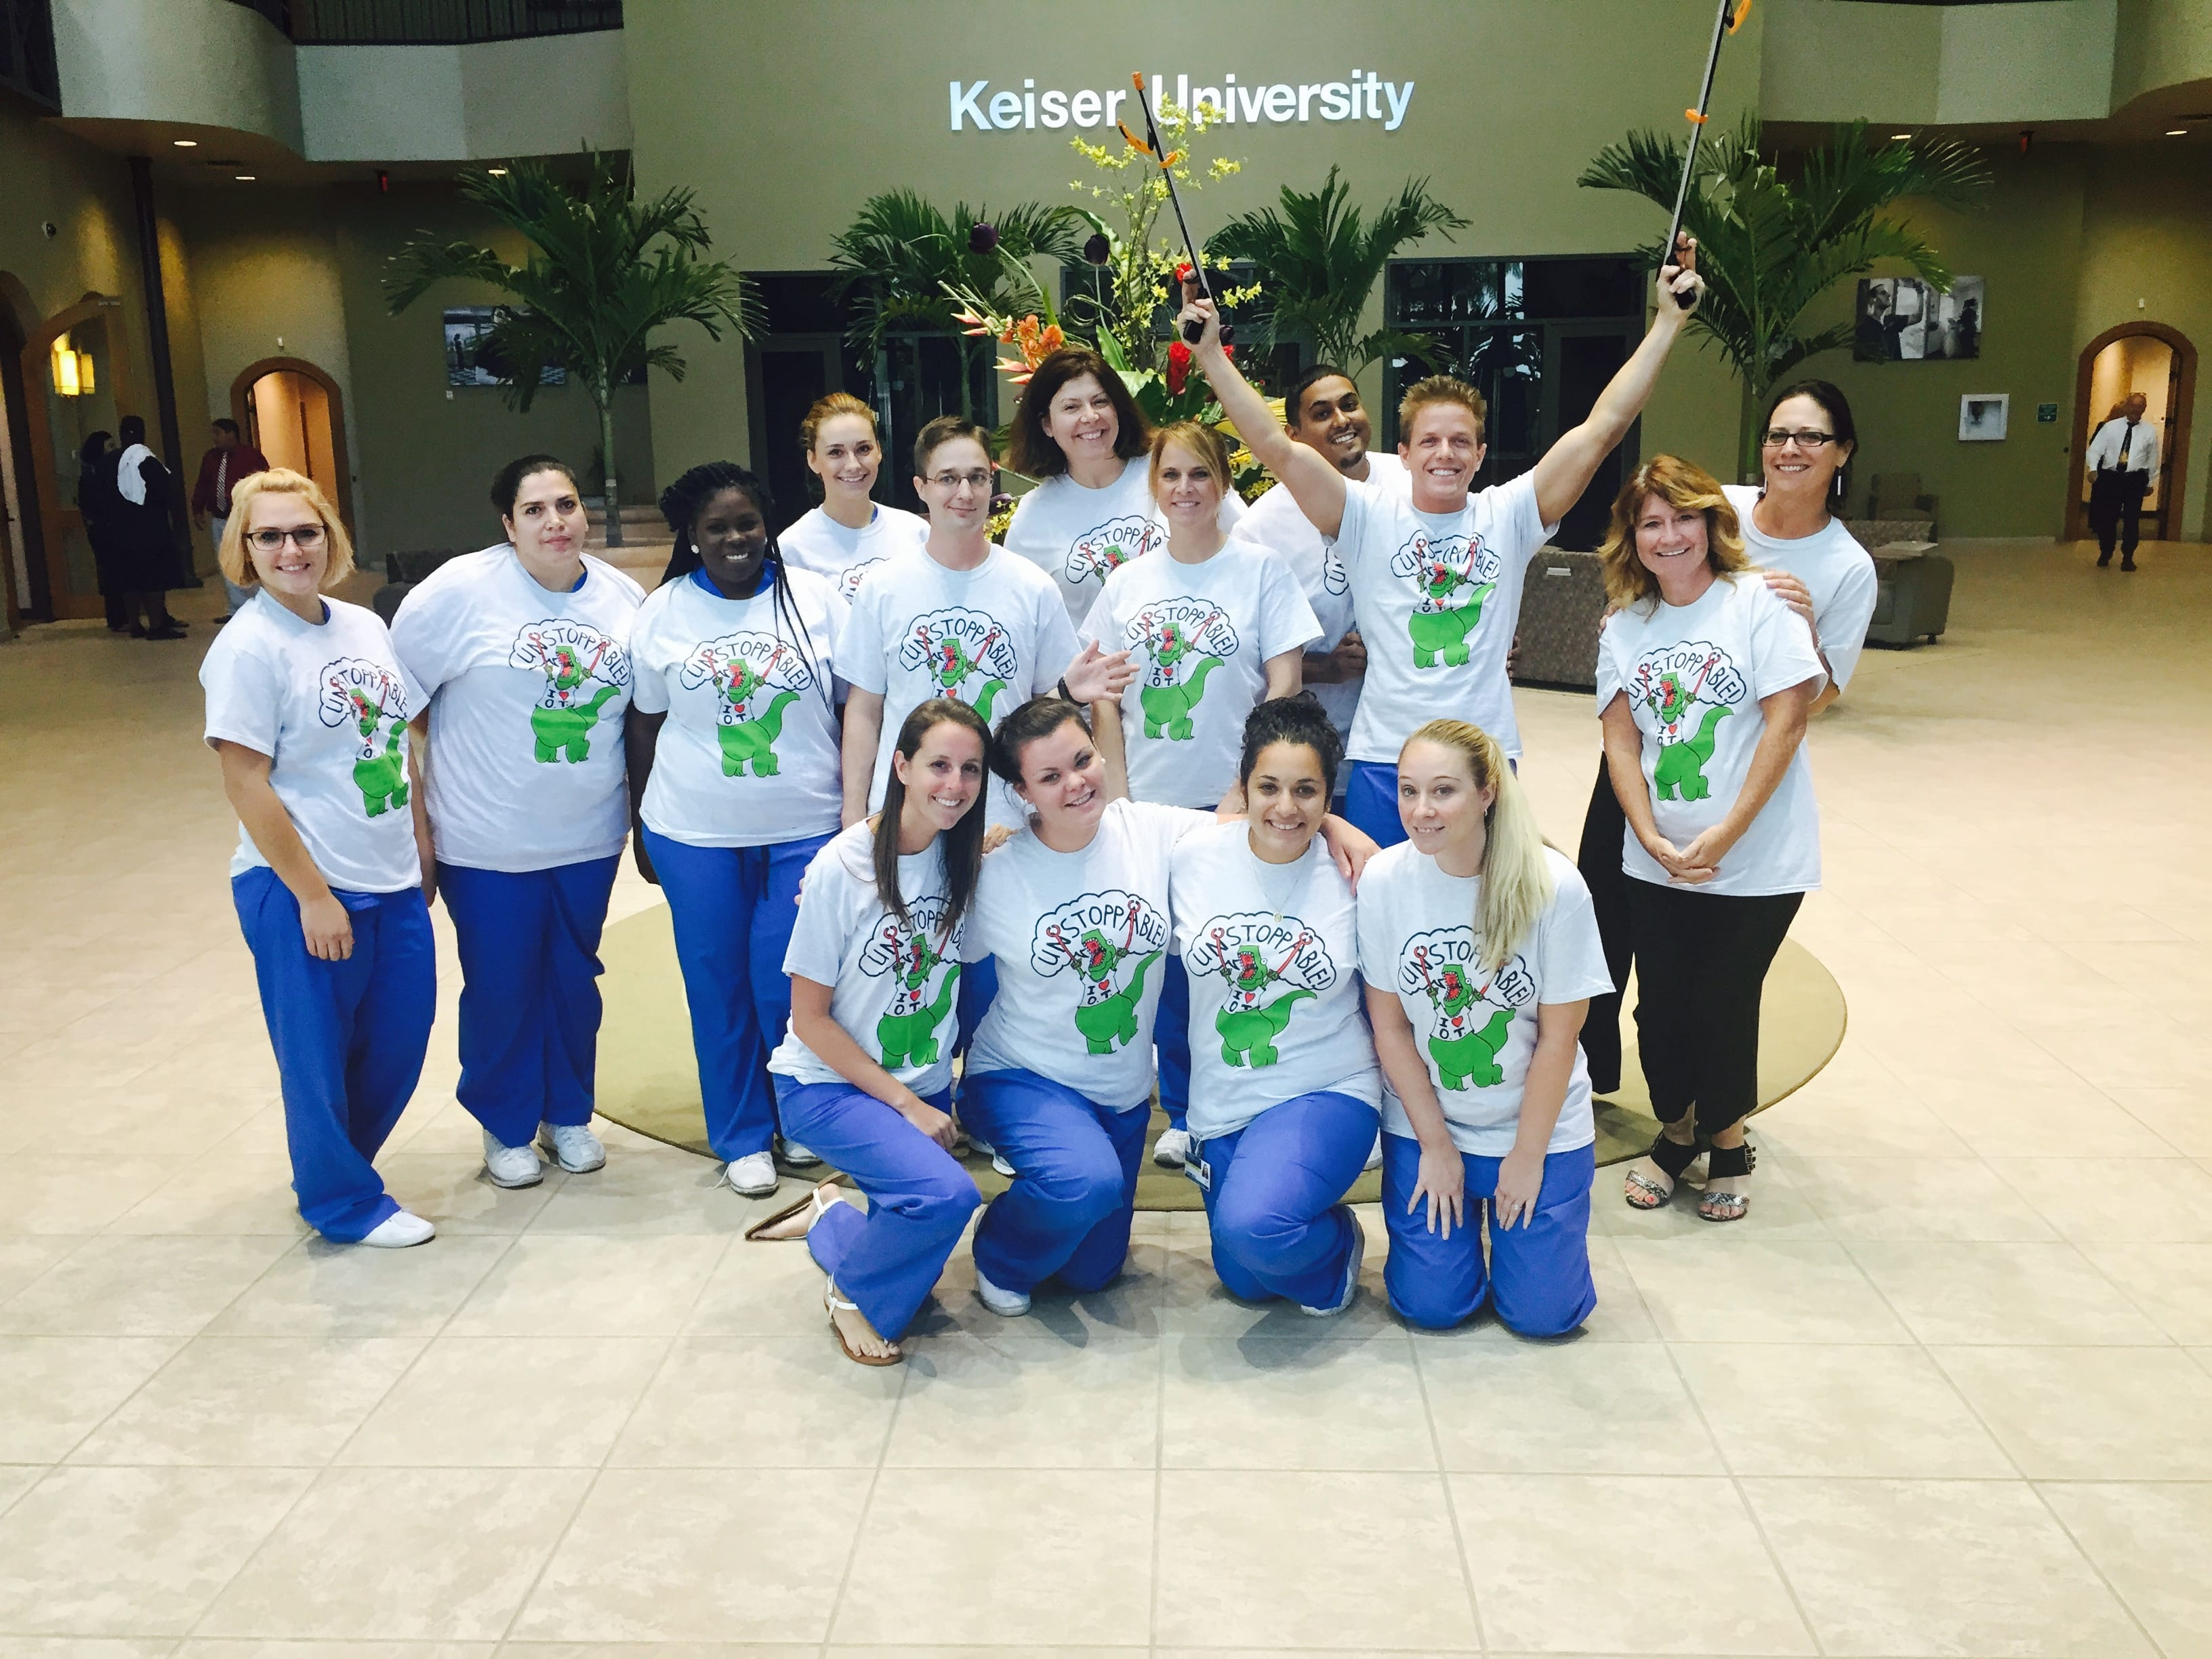 Tampa's OTA Students Raise funds for Charity